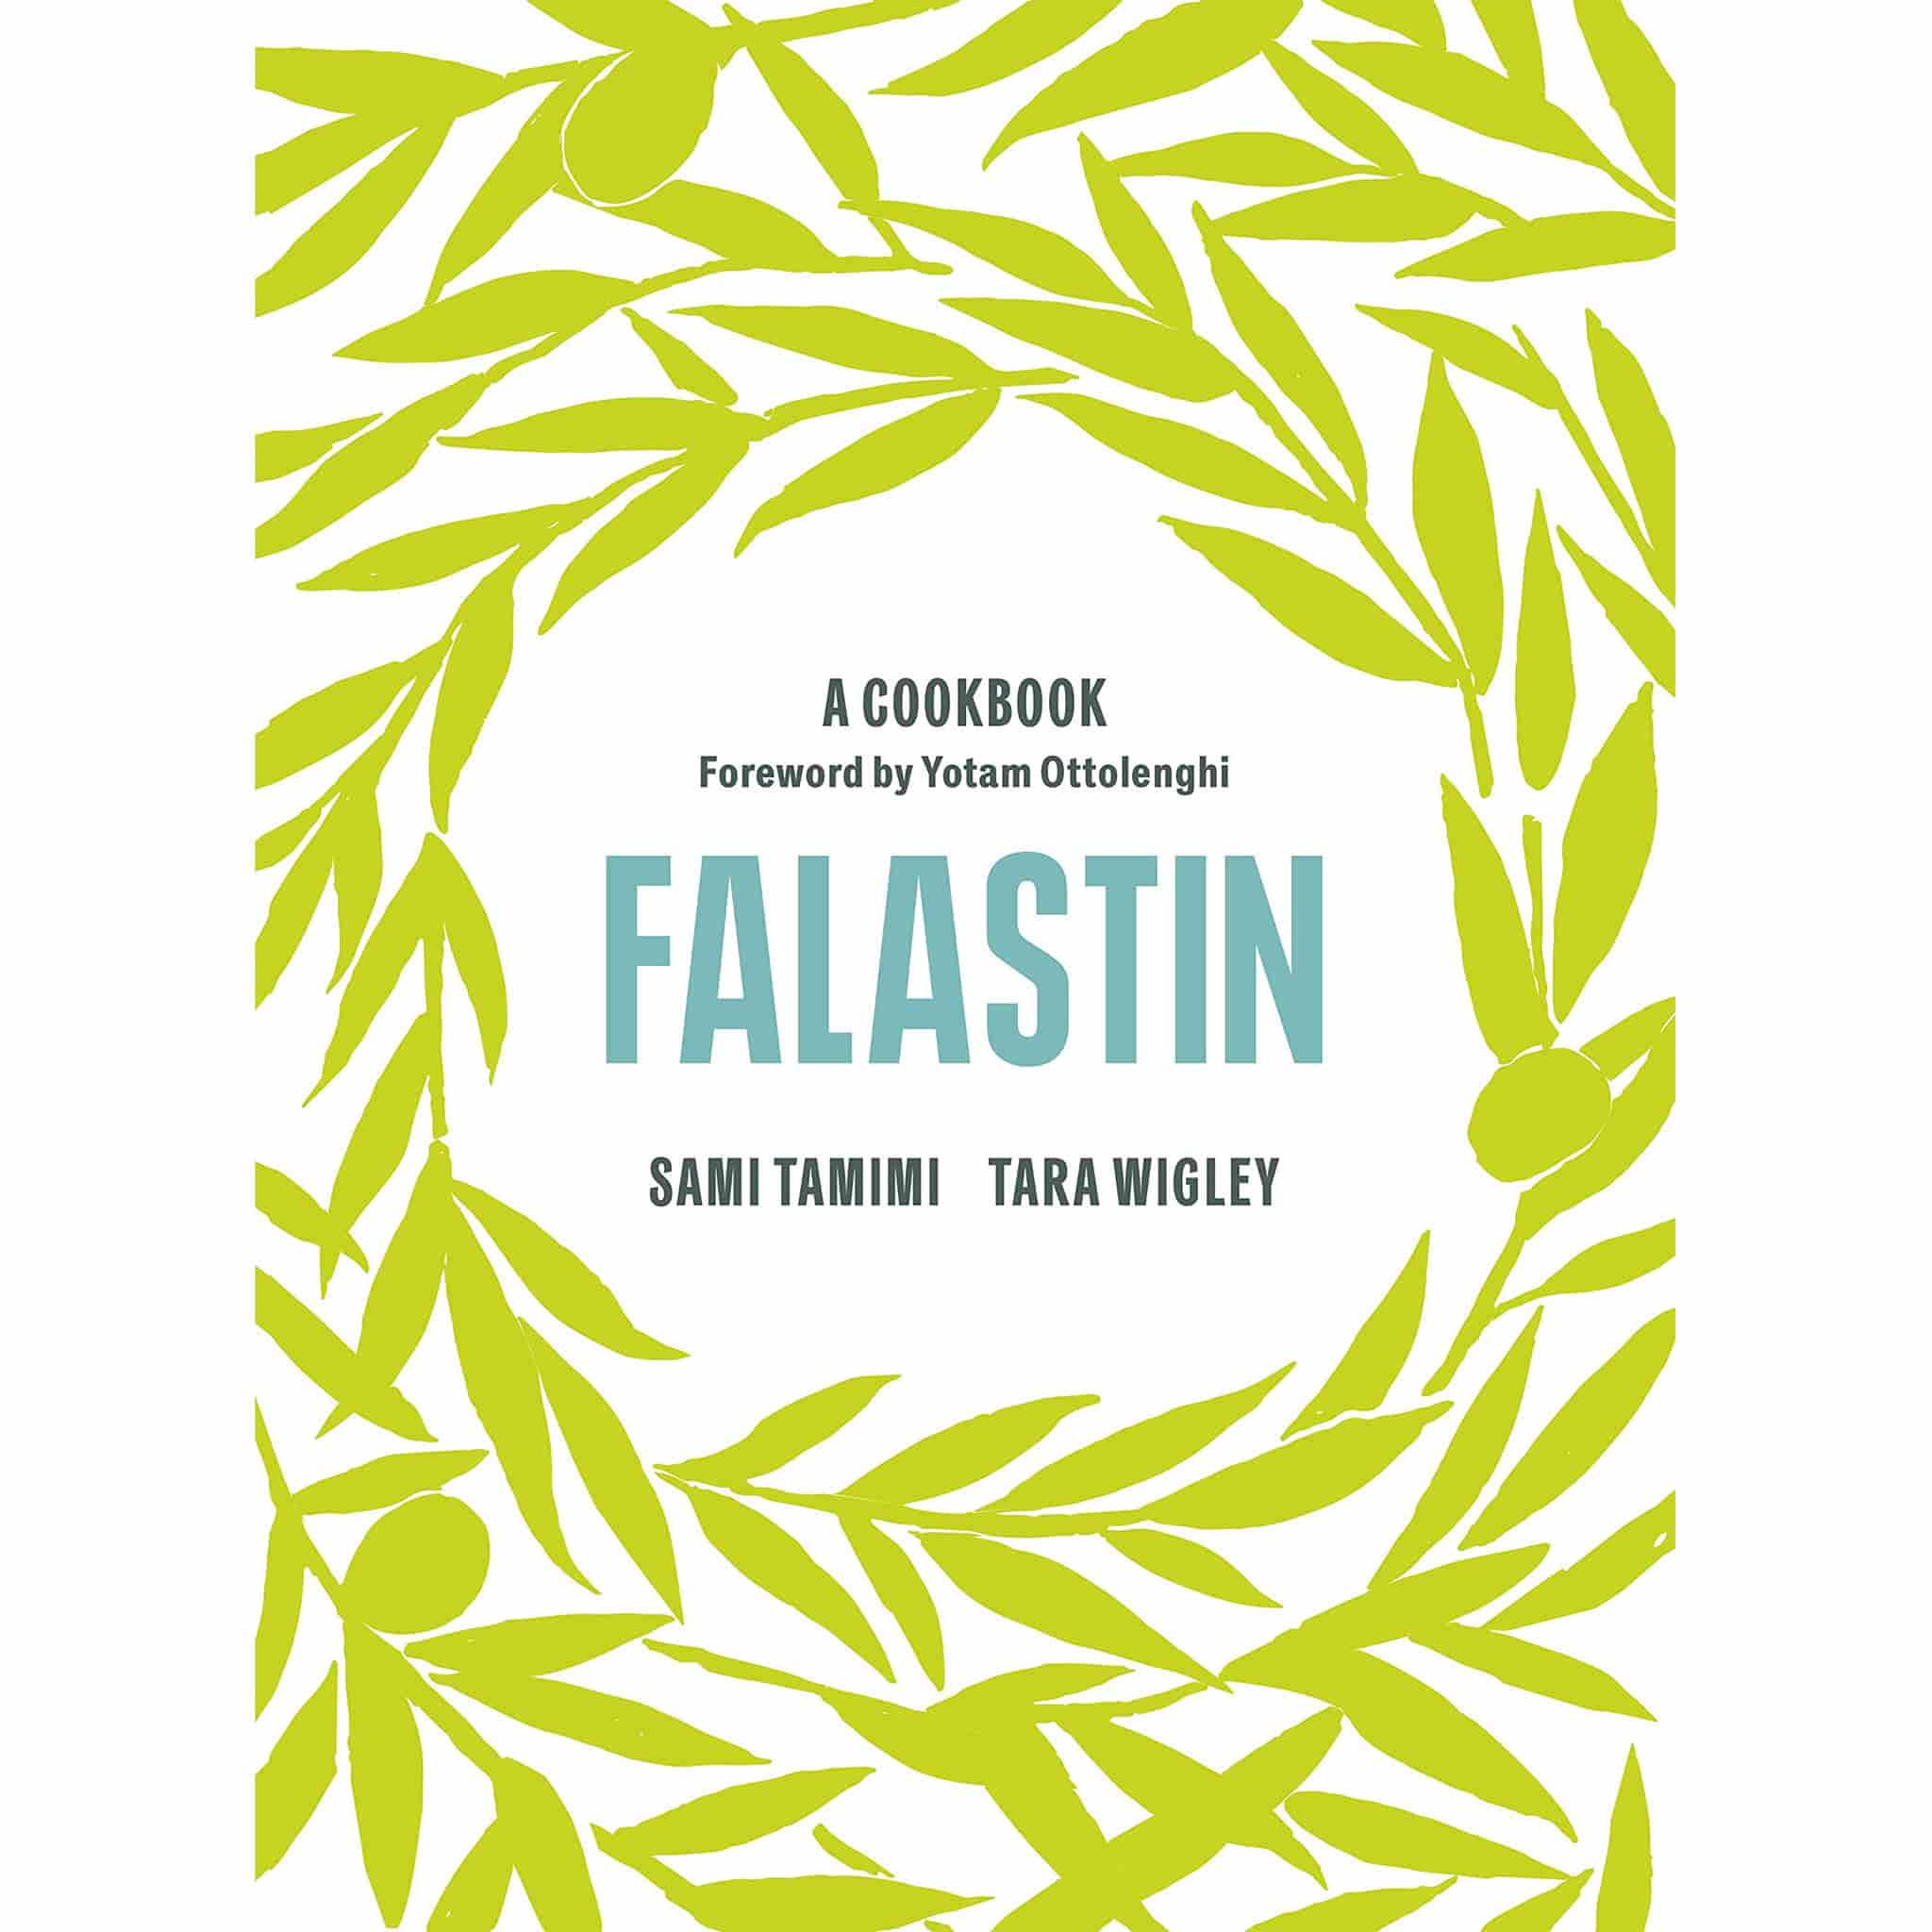 Falastin: a Cookbook by Sami Tamimi & Tara Wigley